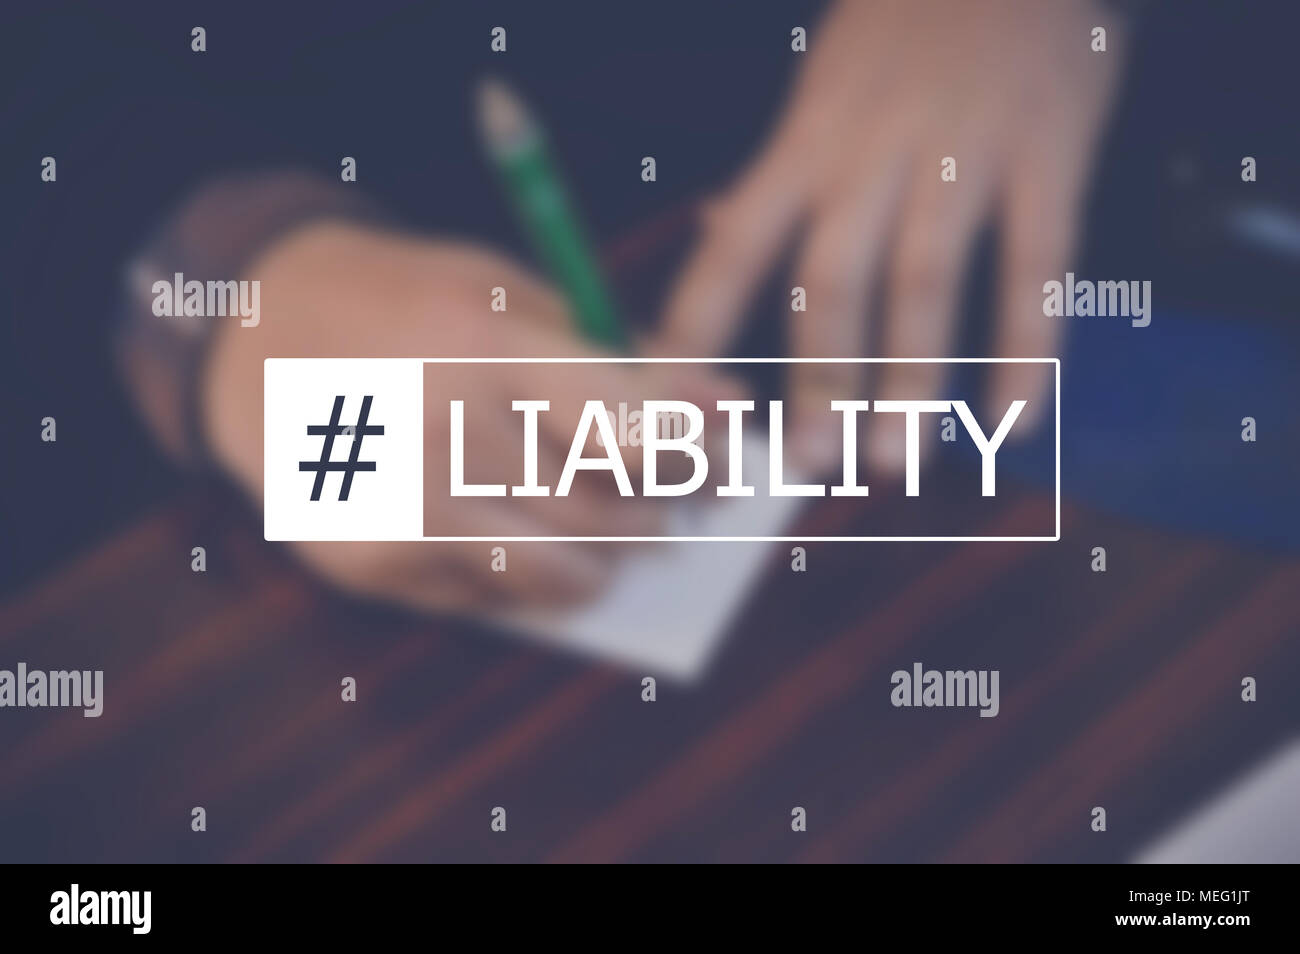 Liability word with businessman hand writing a note background - Stock Image